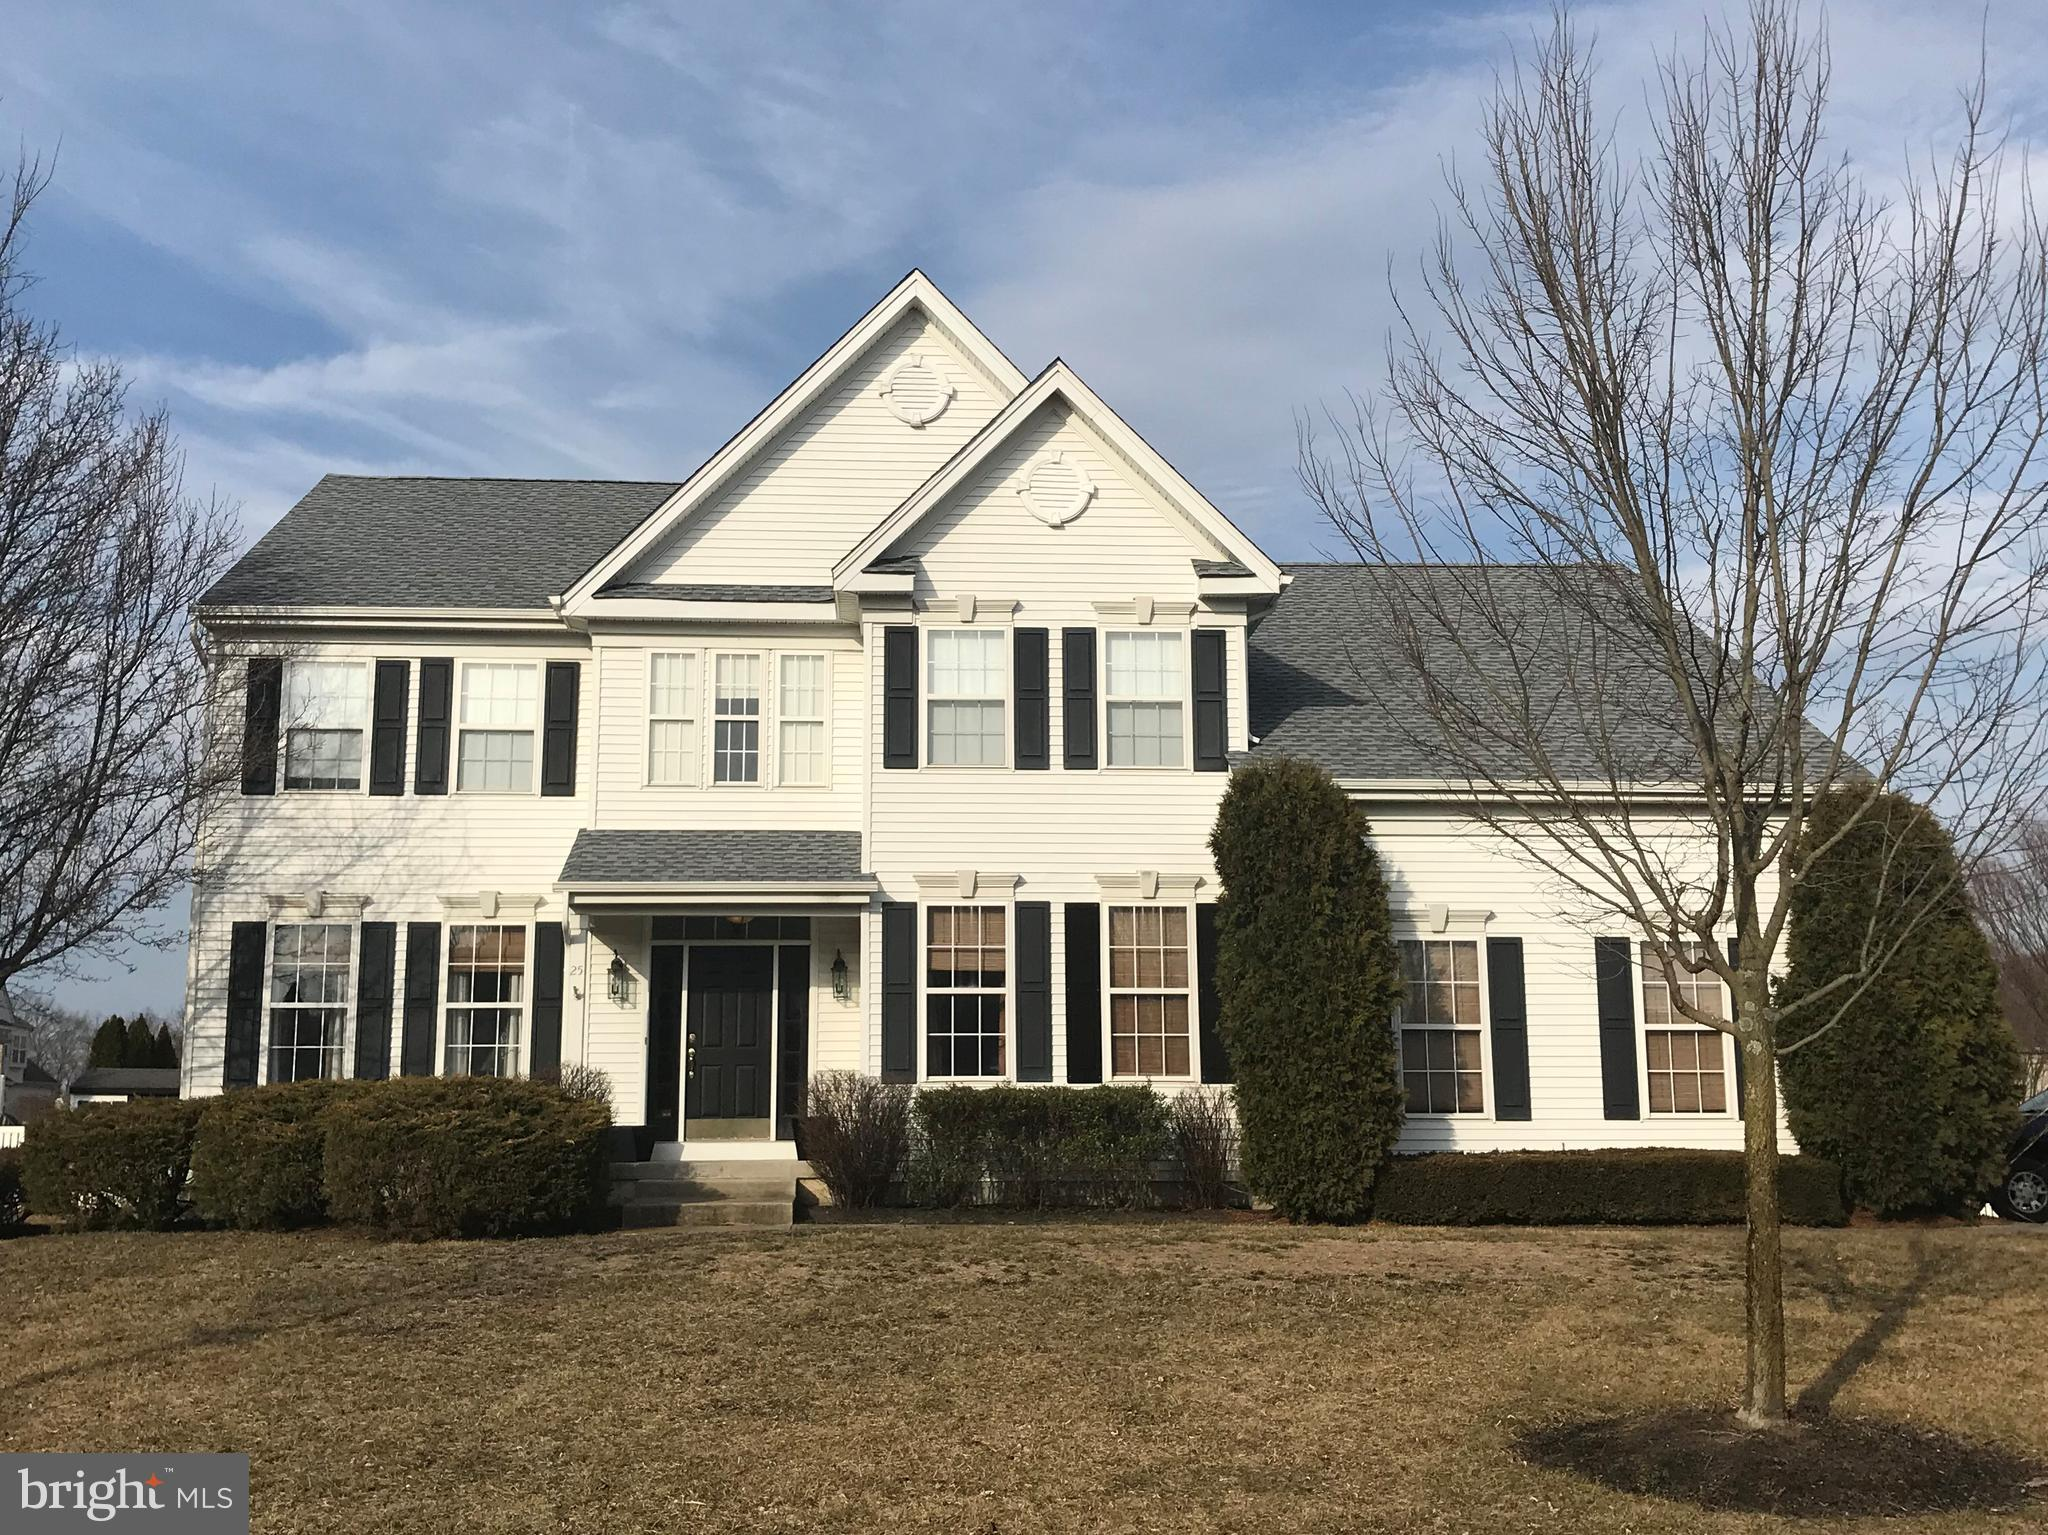 25 THISTLE LANE, LUMBERTON, NJ 08048